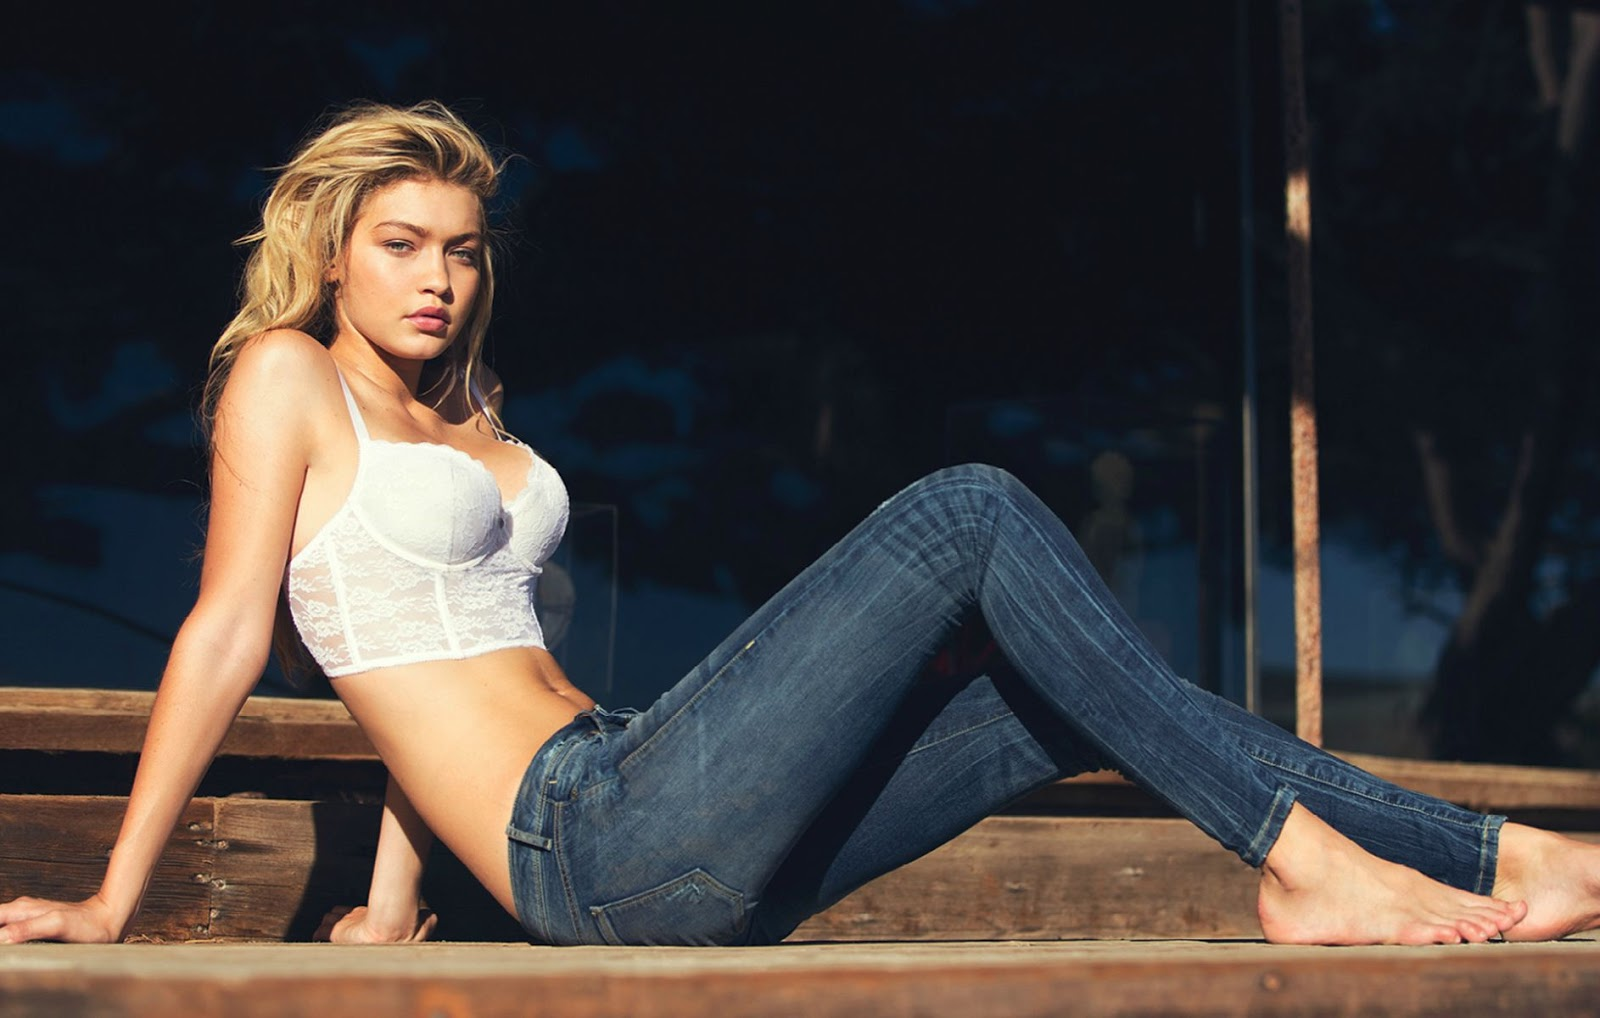 Gigi Hadid, Highest Paid Model